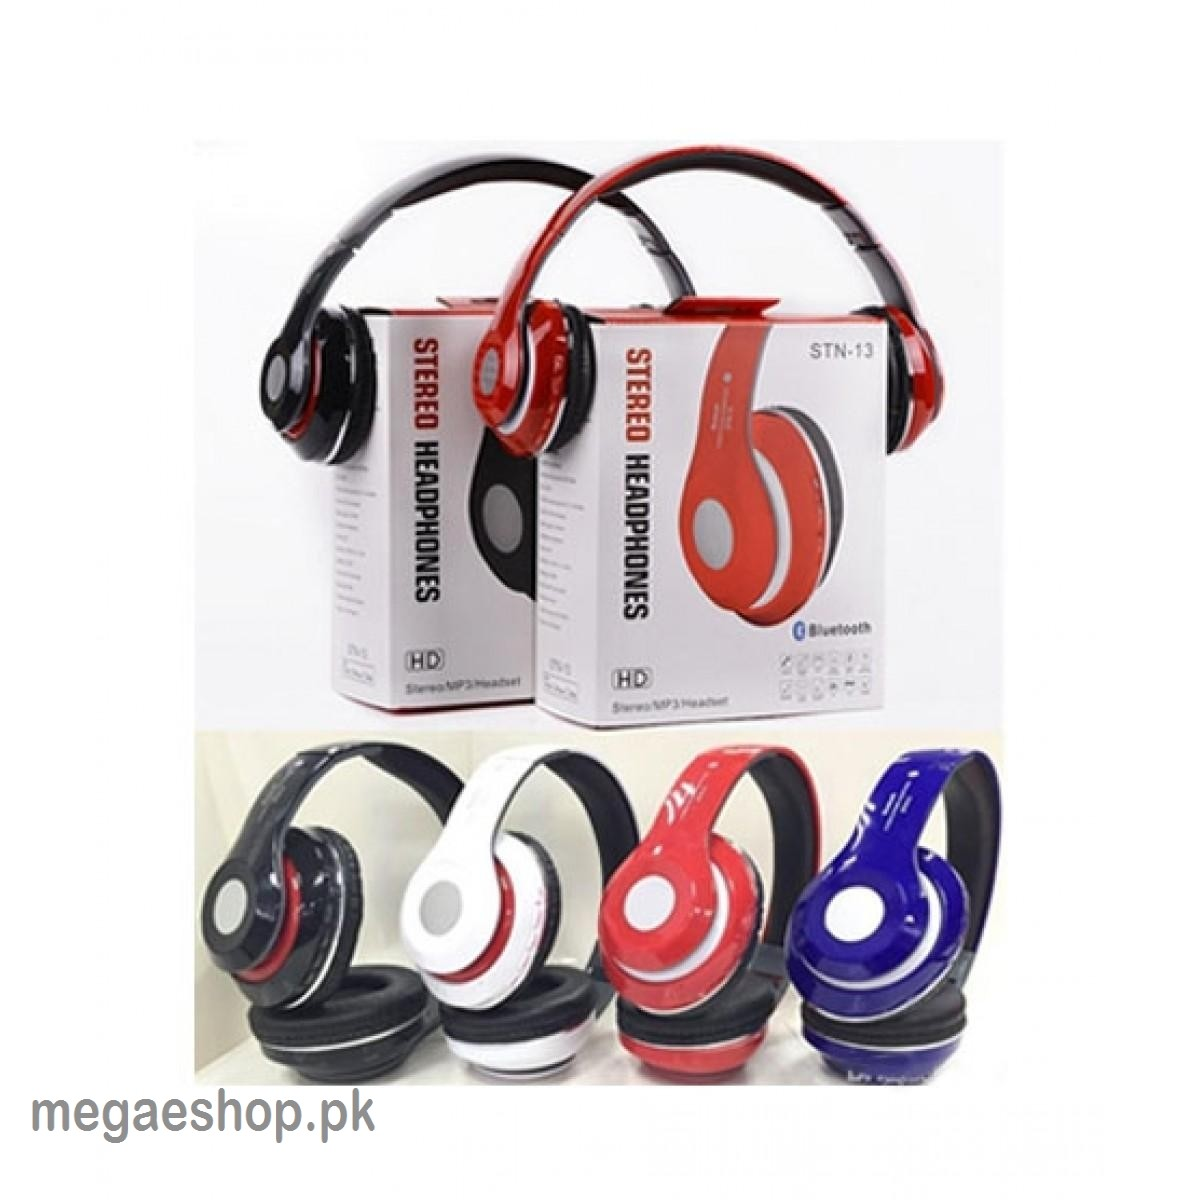 Beats STN-13 Wireless Bluetooth Headphones FOR PC AND SMART PHONES